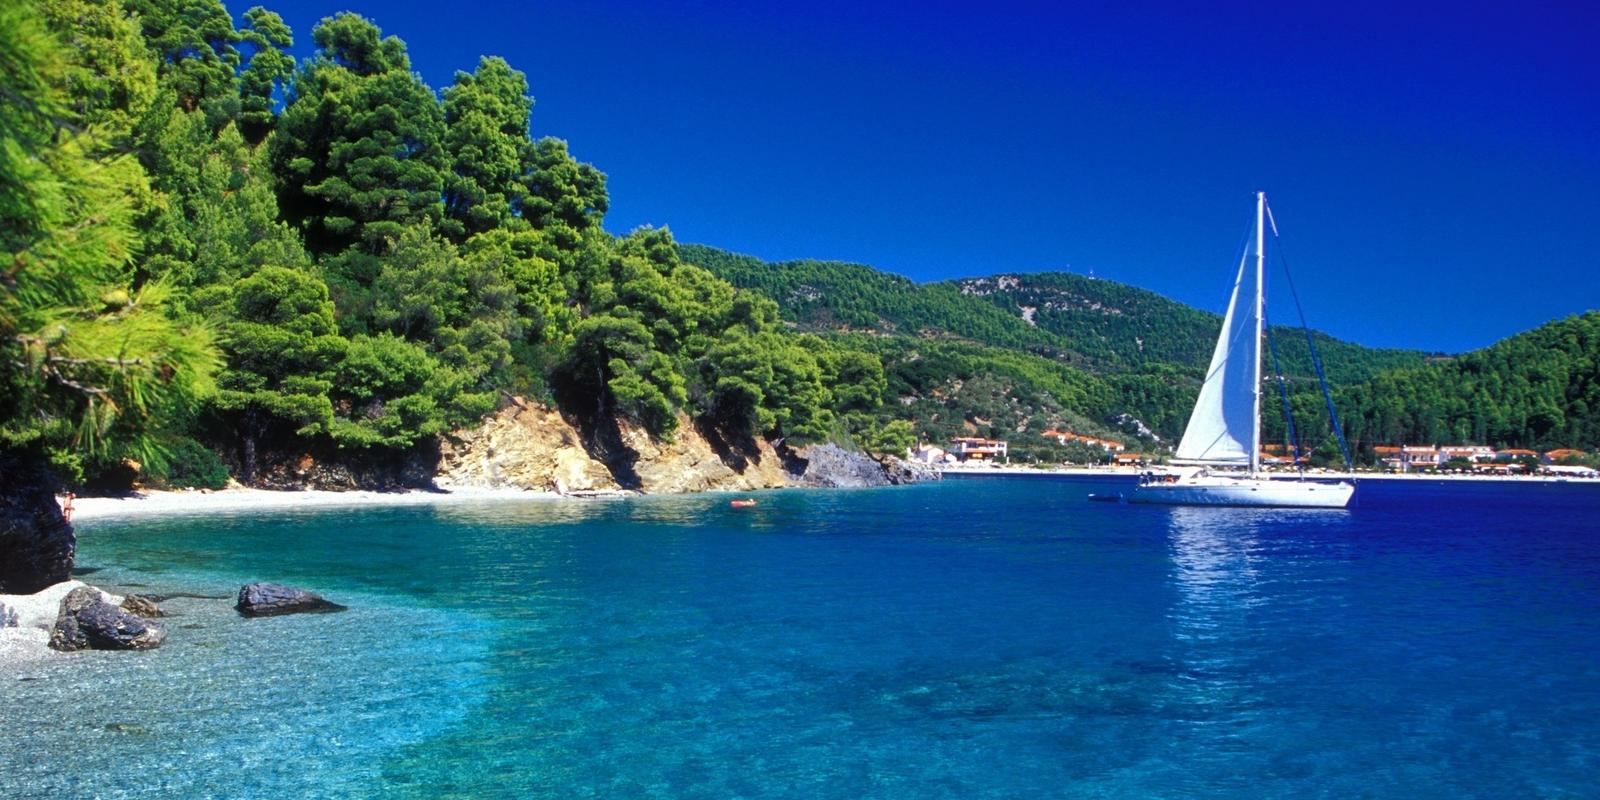 Northern Sporades, the most sparkling Aegean sea waters